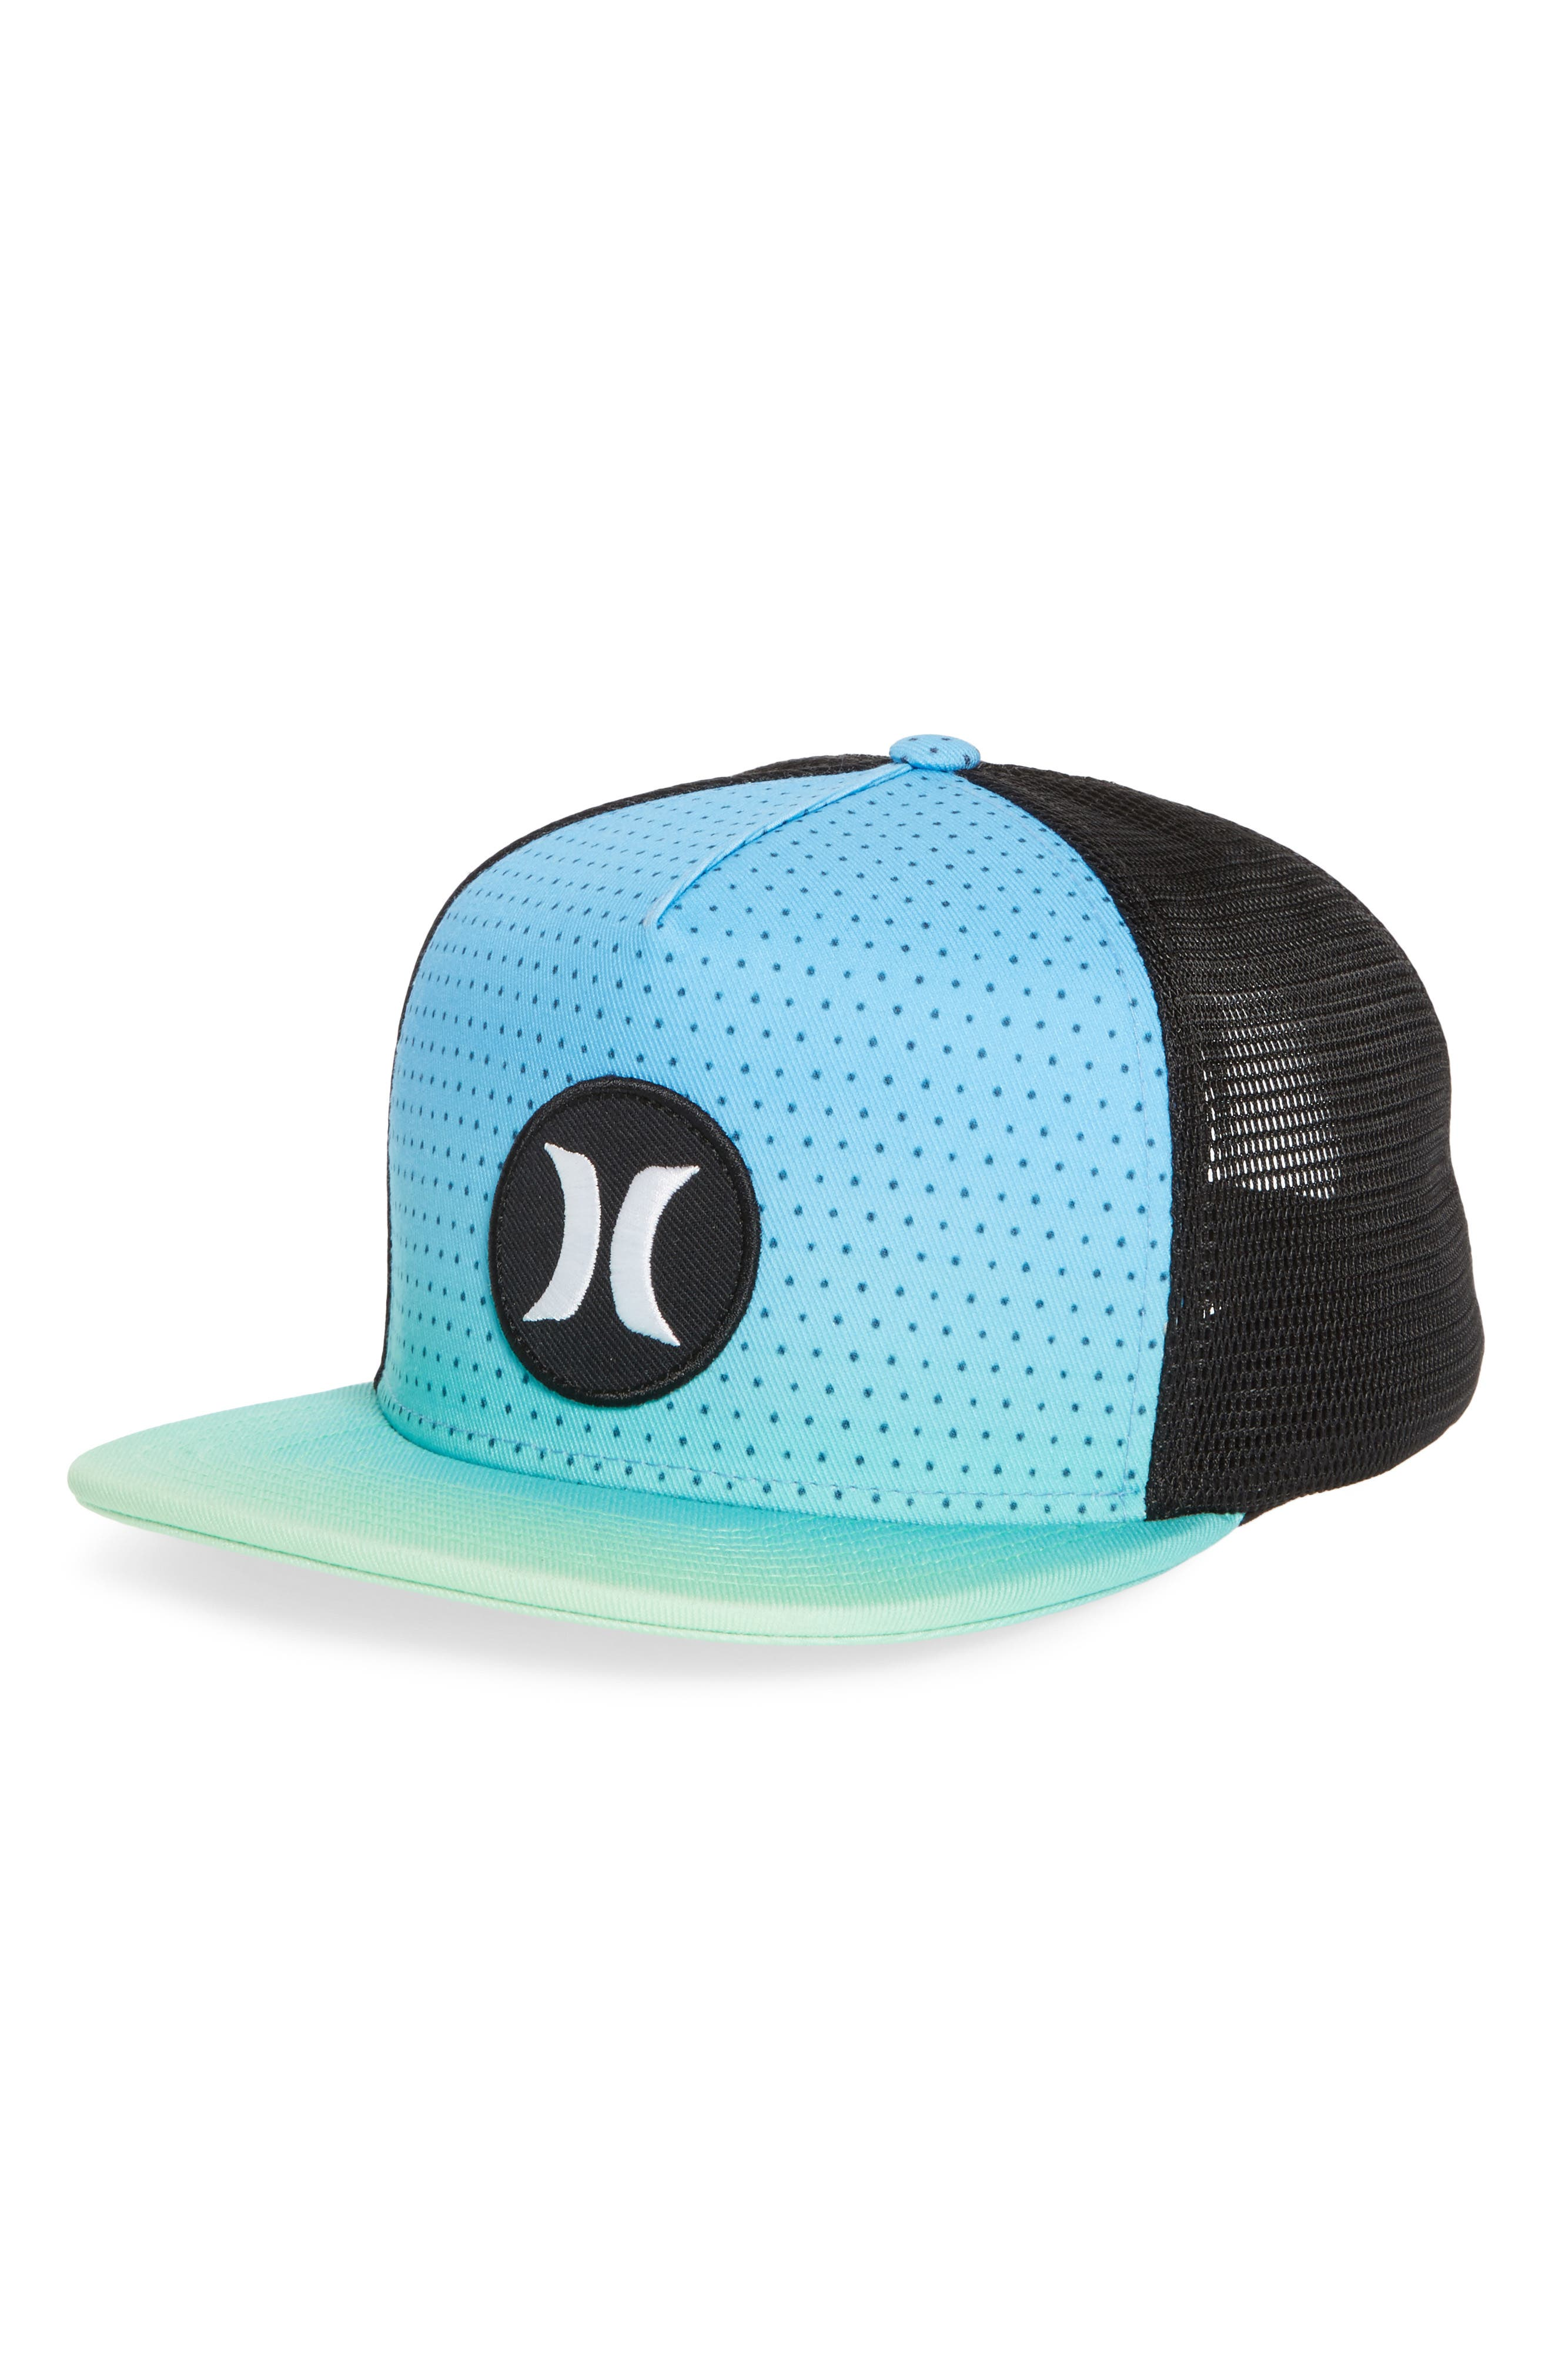 Hurley Third Reef Trucker Cap